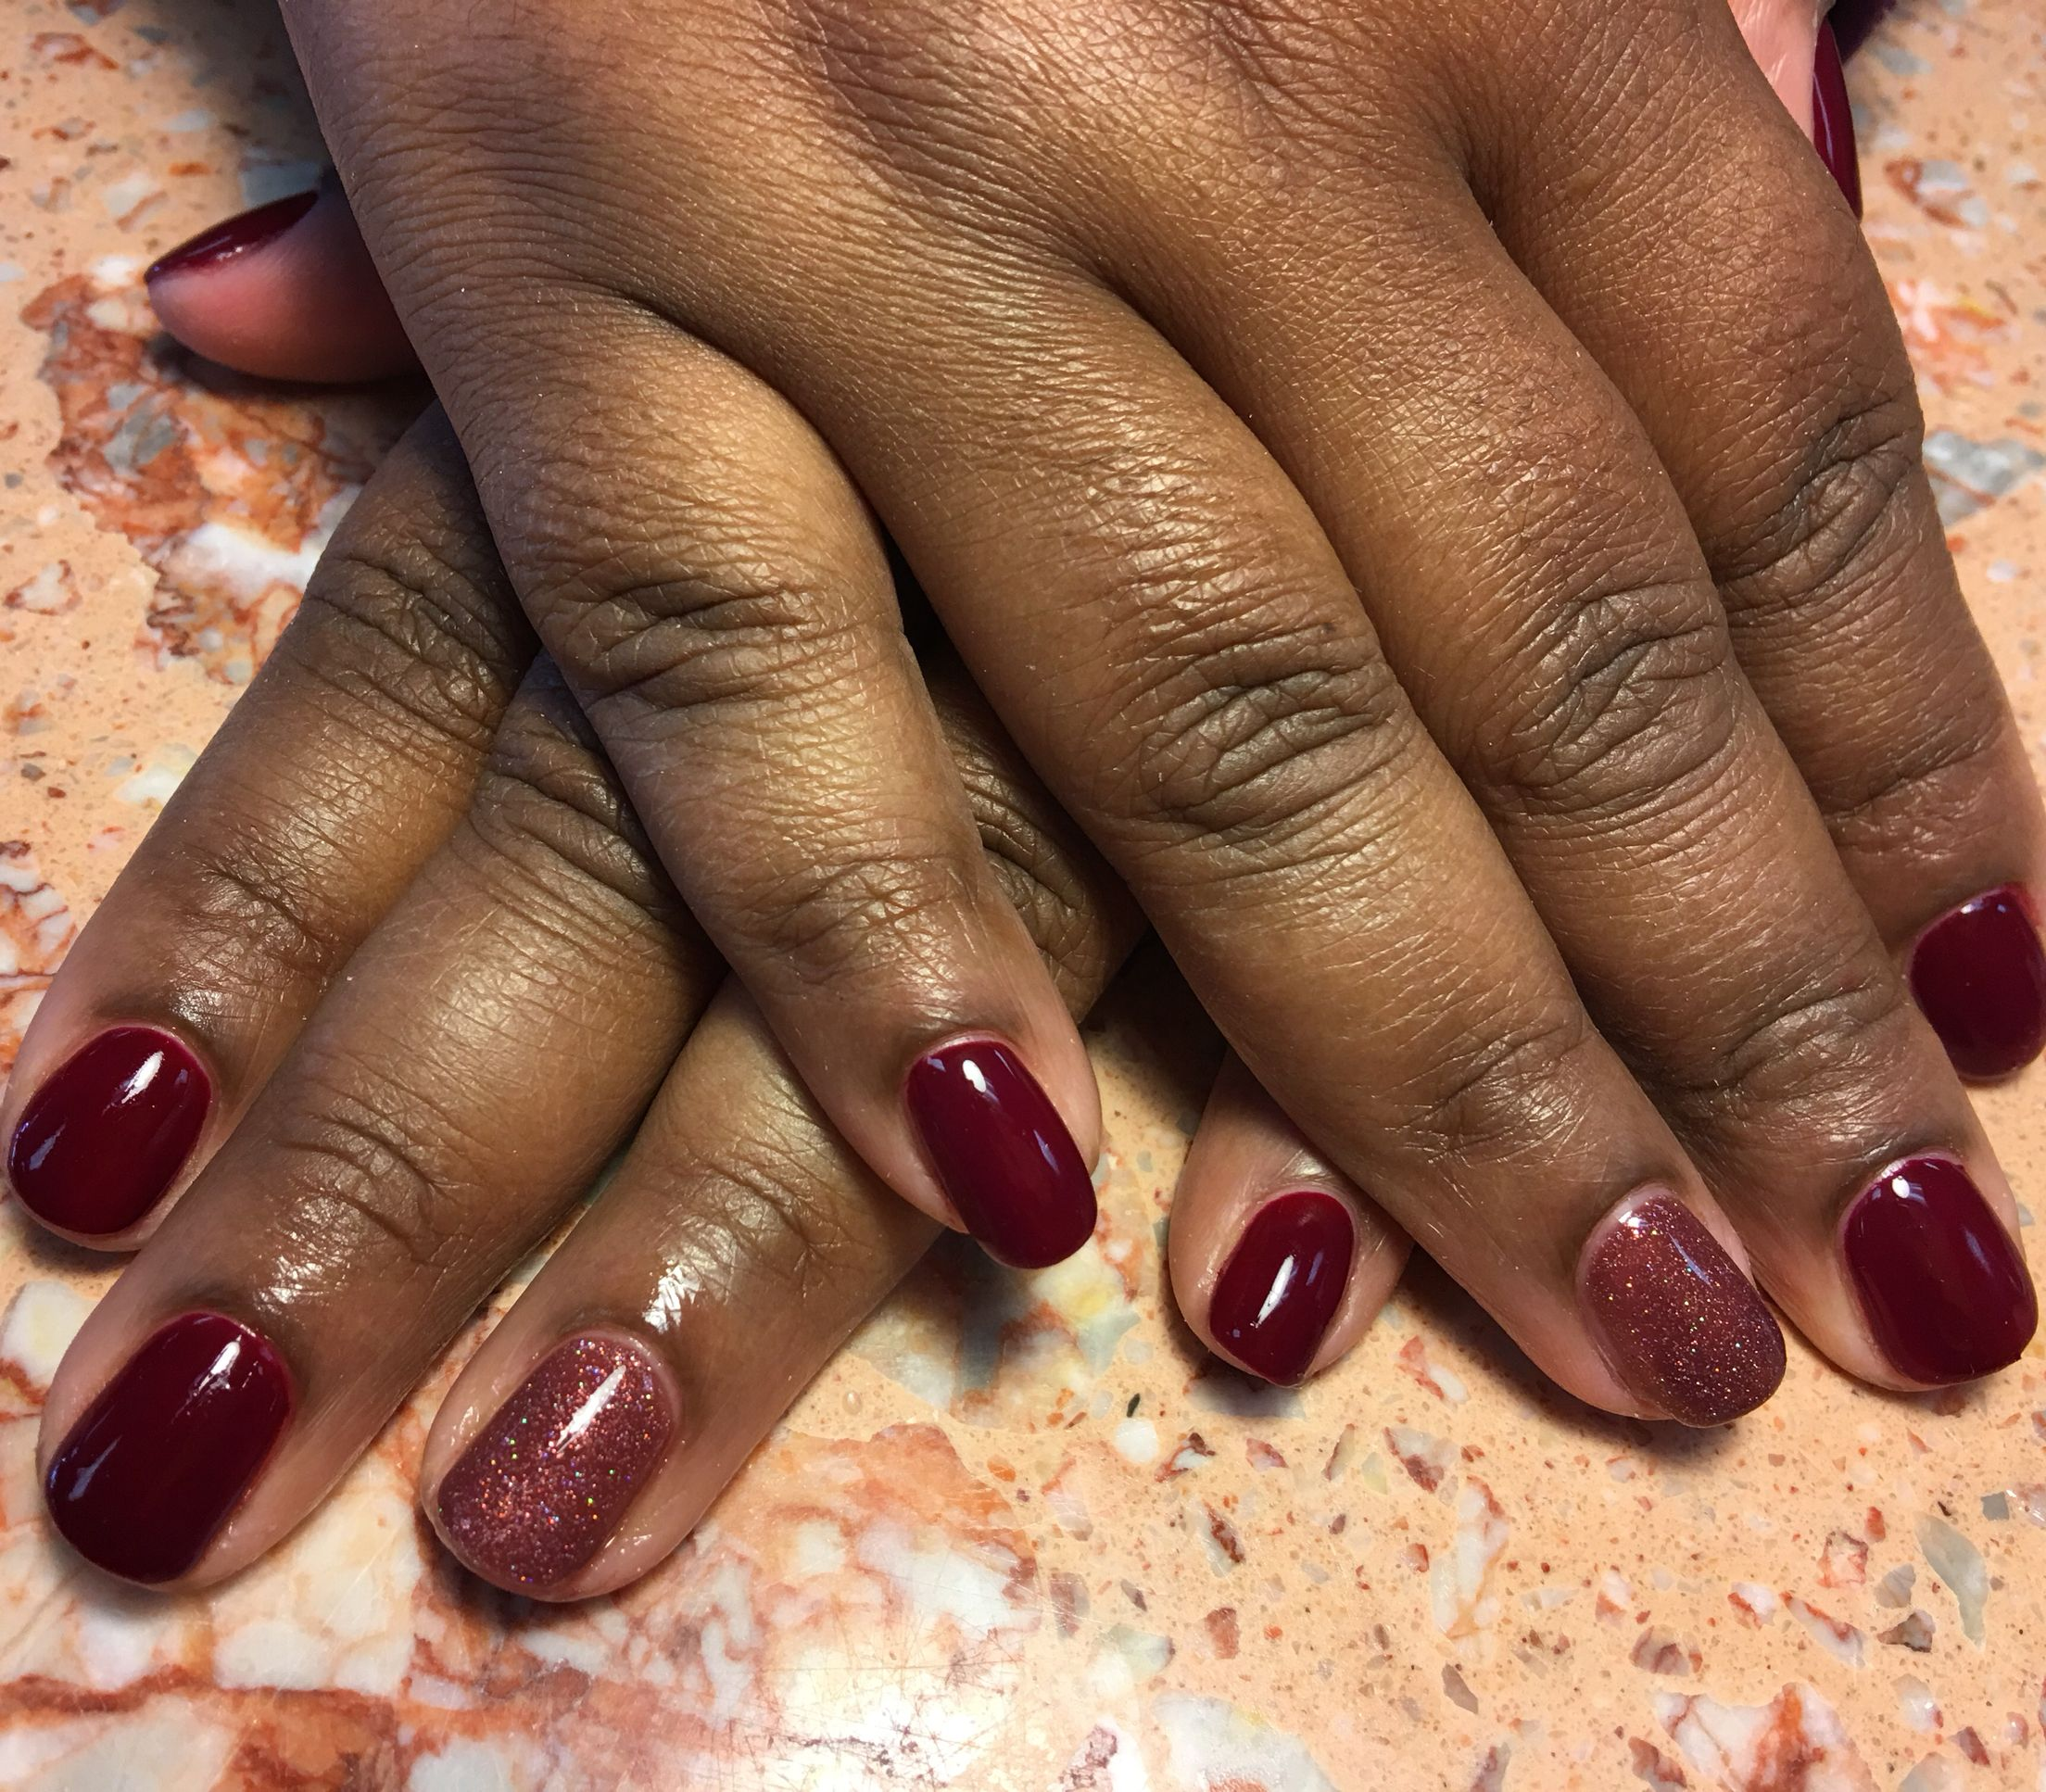 Royal Red By Perfect Match Brandy By Cacee Gelmani Gelpolish Gelcolor Gelnails Perfectmatch Cacee Caceebeauty Nails Gel Mani Gel Nails